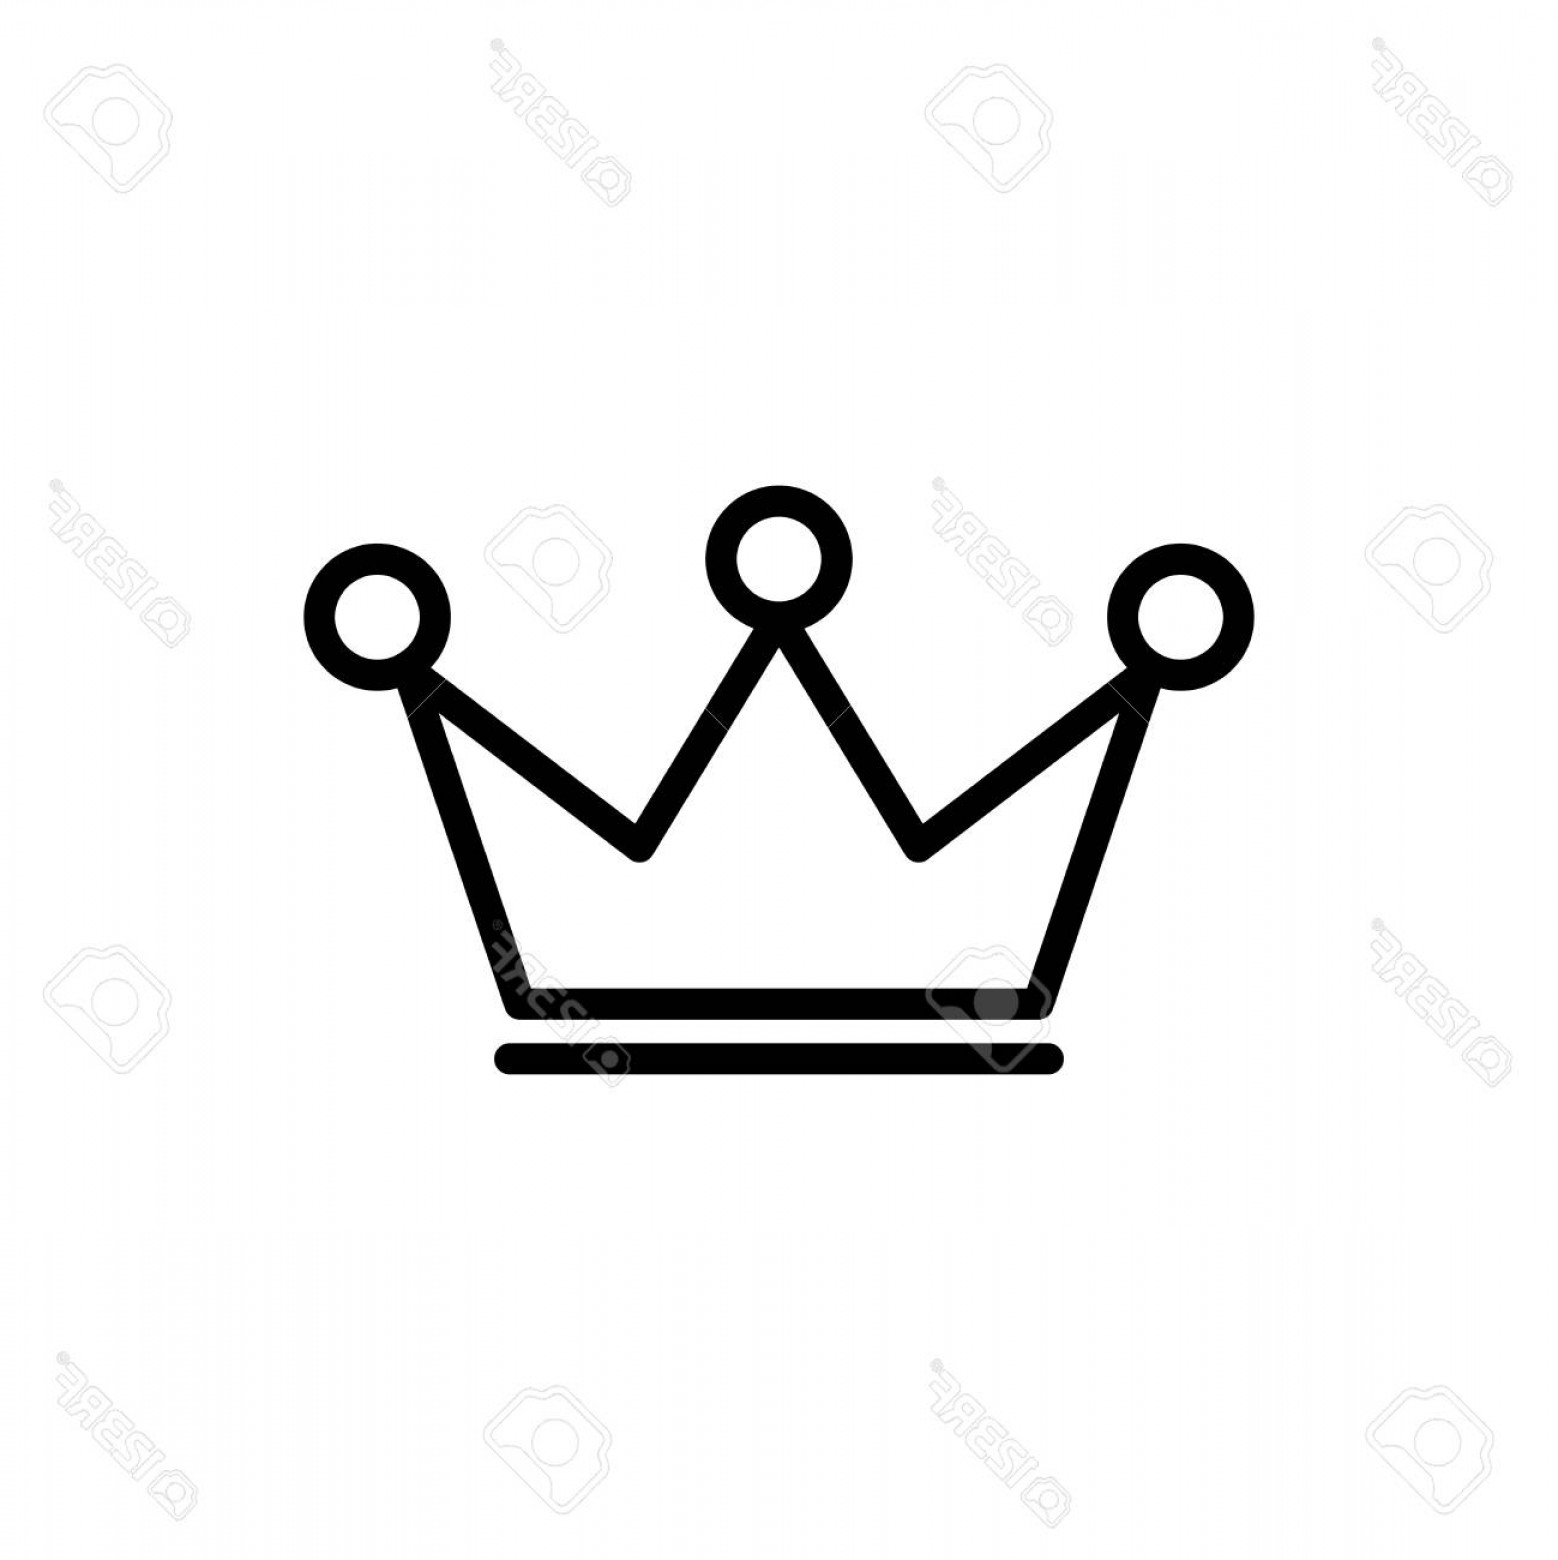 Crown White Outline Vector: Photostock Vector Premium Award Icon Crown Or In Line Style High Quality Sign And Symbol On A White Outline Pictogram